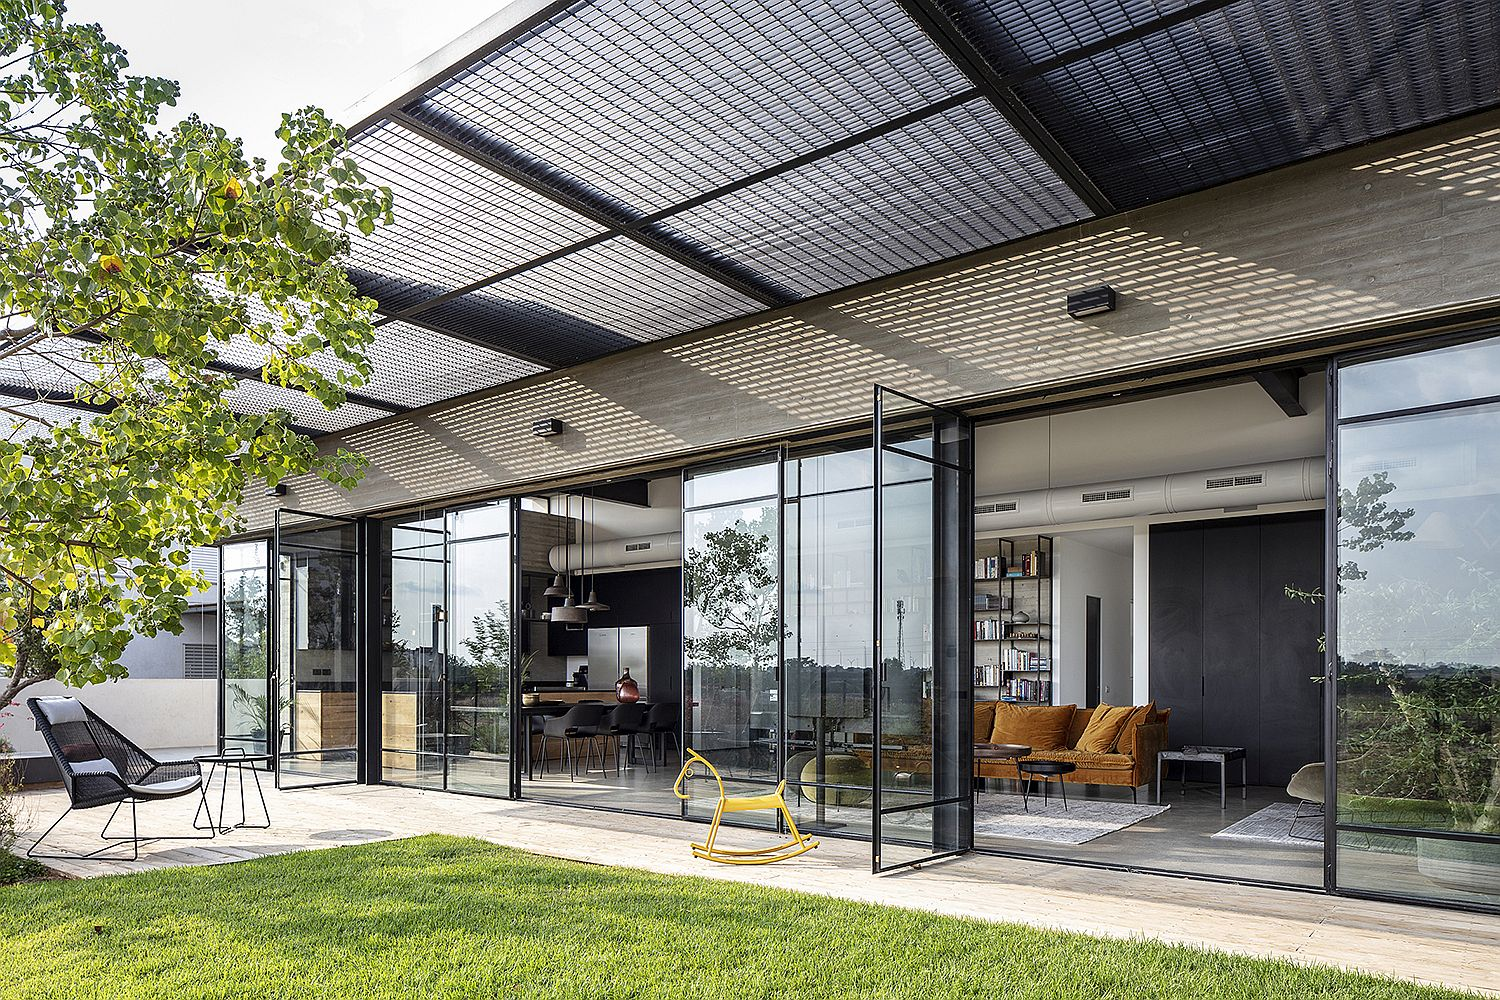 Metallic mesh pergola outside the living area provides necessary shade